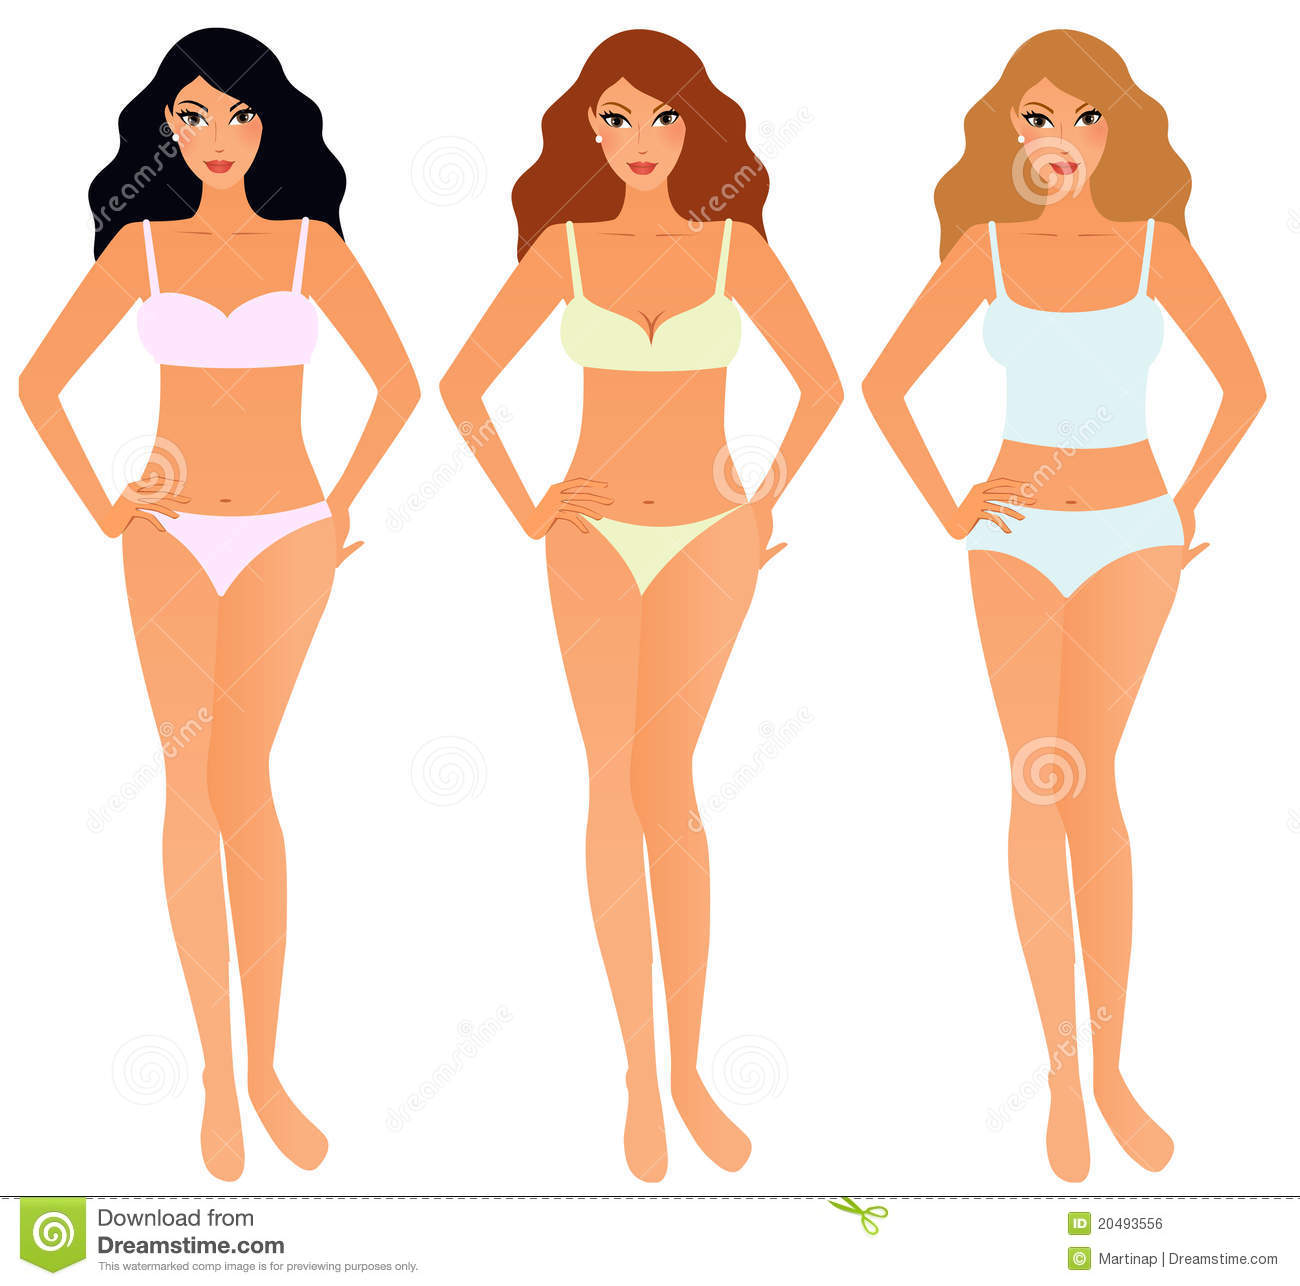 Clipart Body In Underwear.